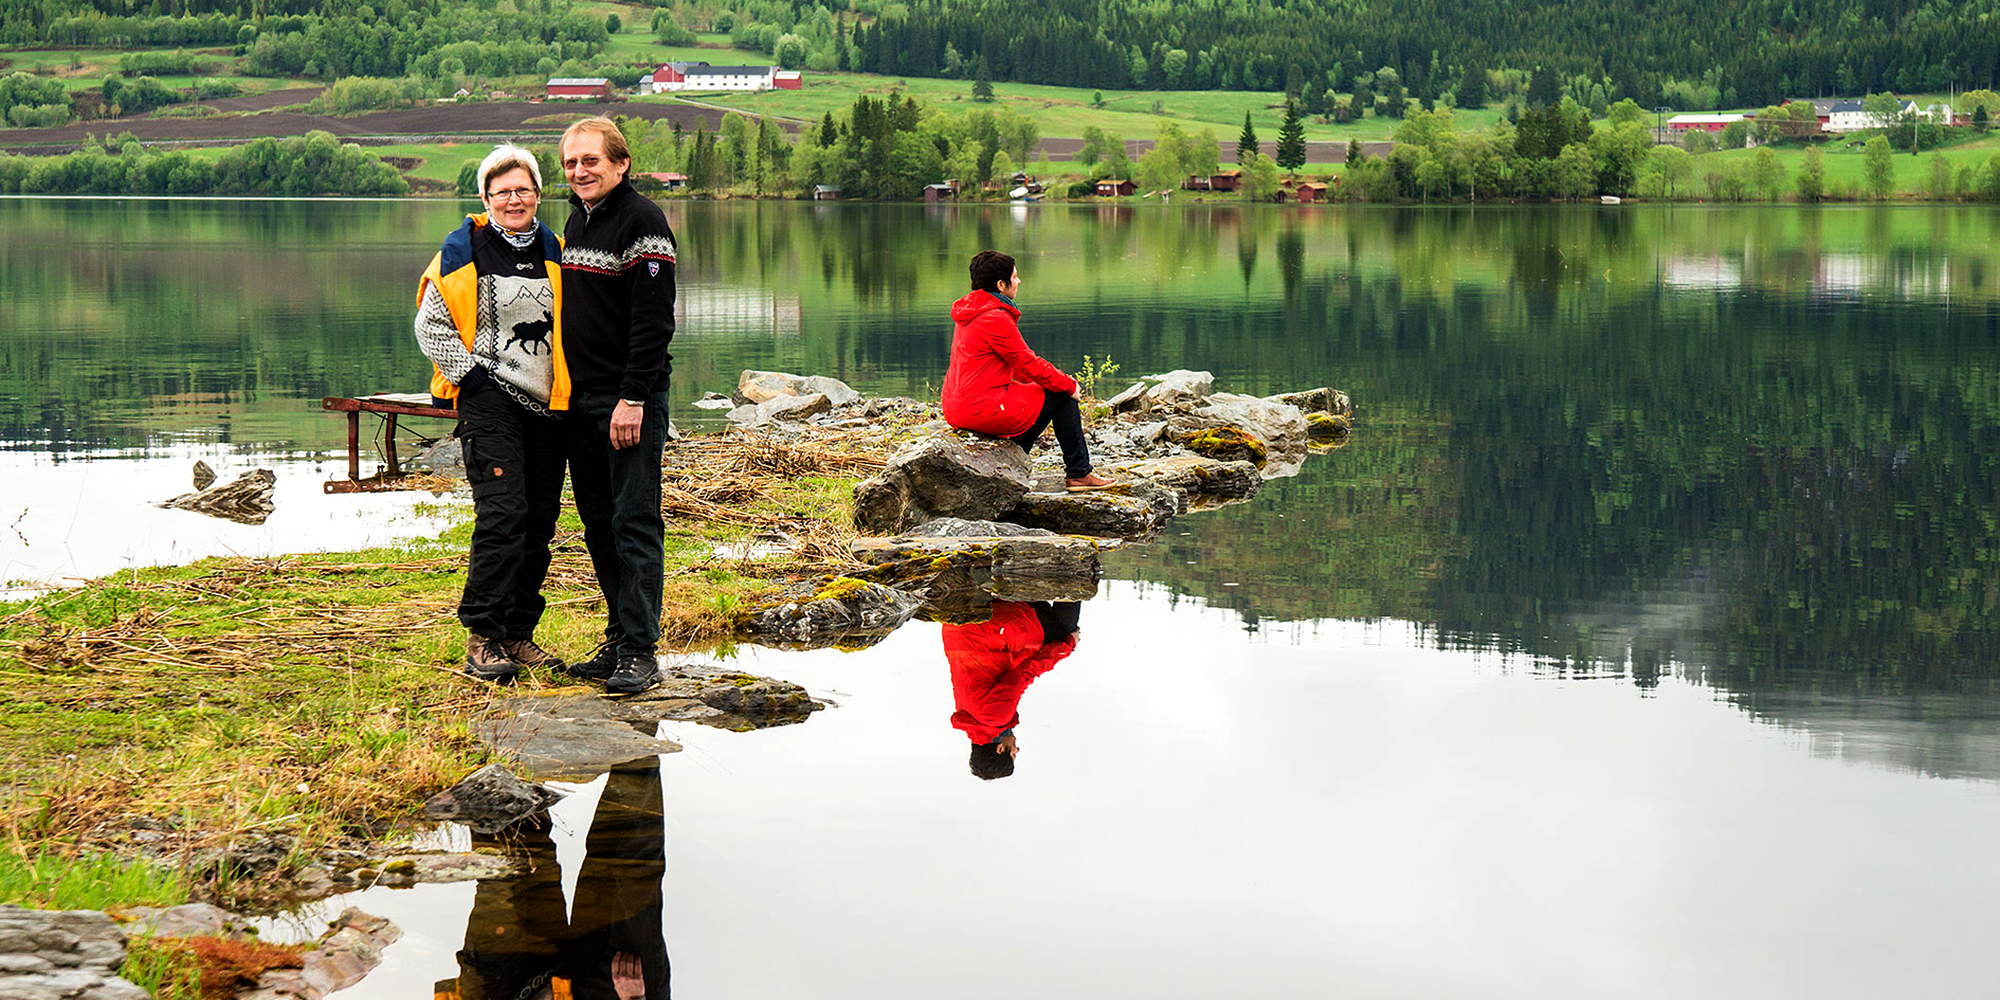 The hosts of Føllingstua camping by Lake Snåsa. Copyright: Steinar Johansen